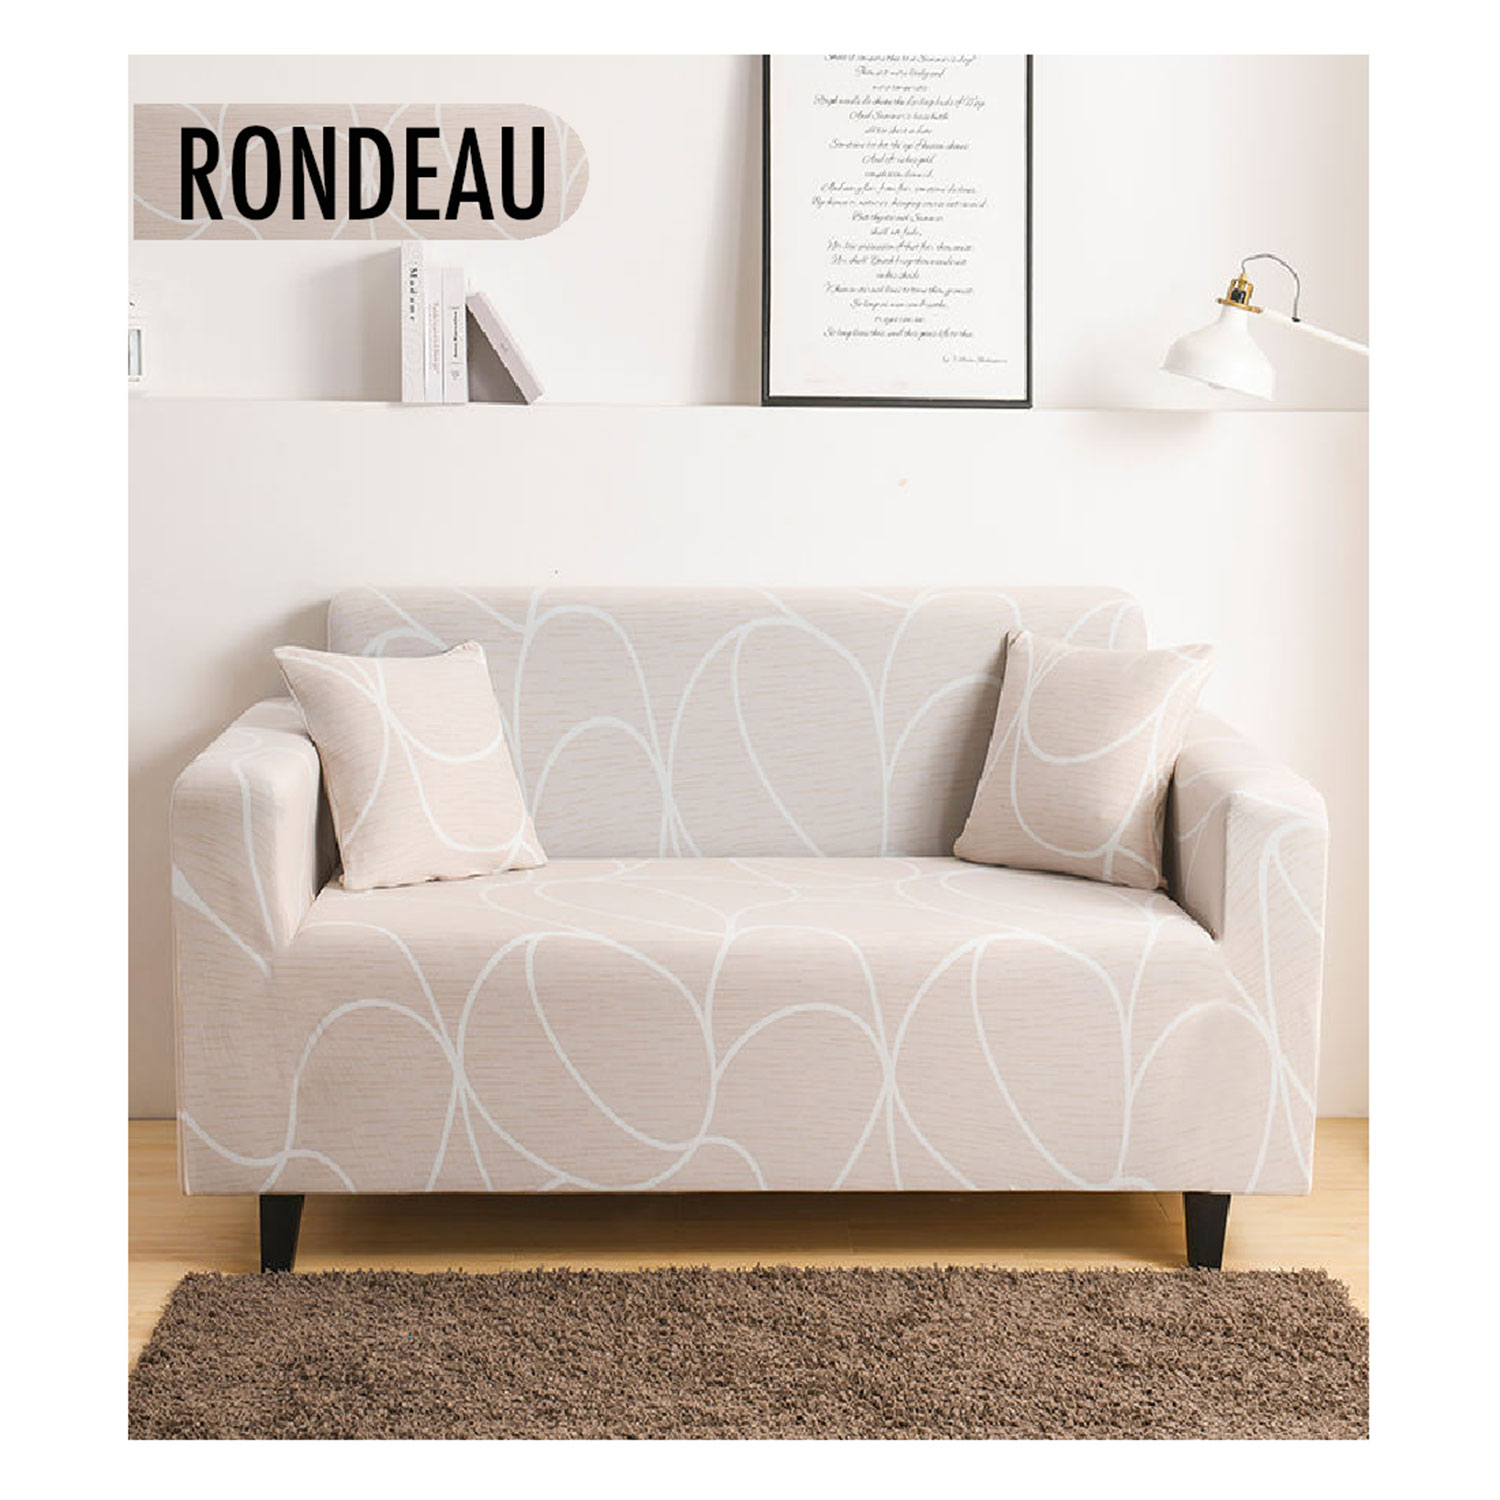 Rondeau 2-zits Decoprotect stretch bankhoes